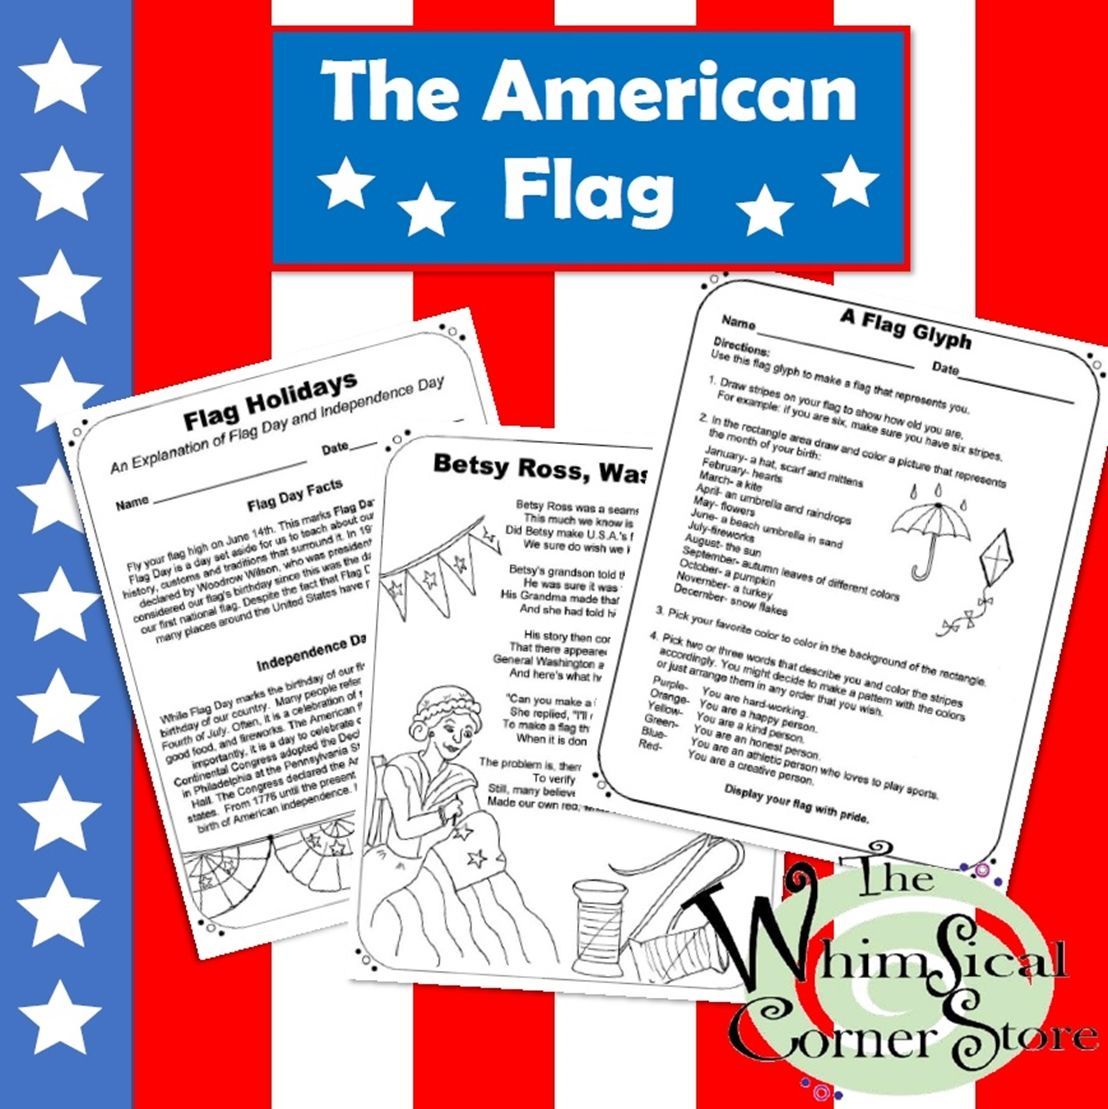 The American Flag Two Original Poems With Accompanying